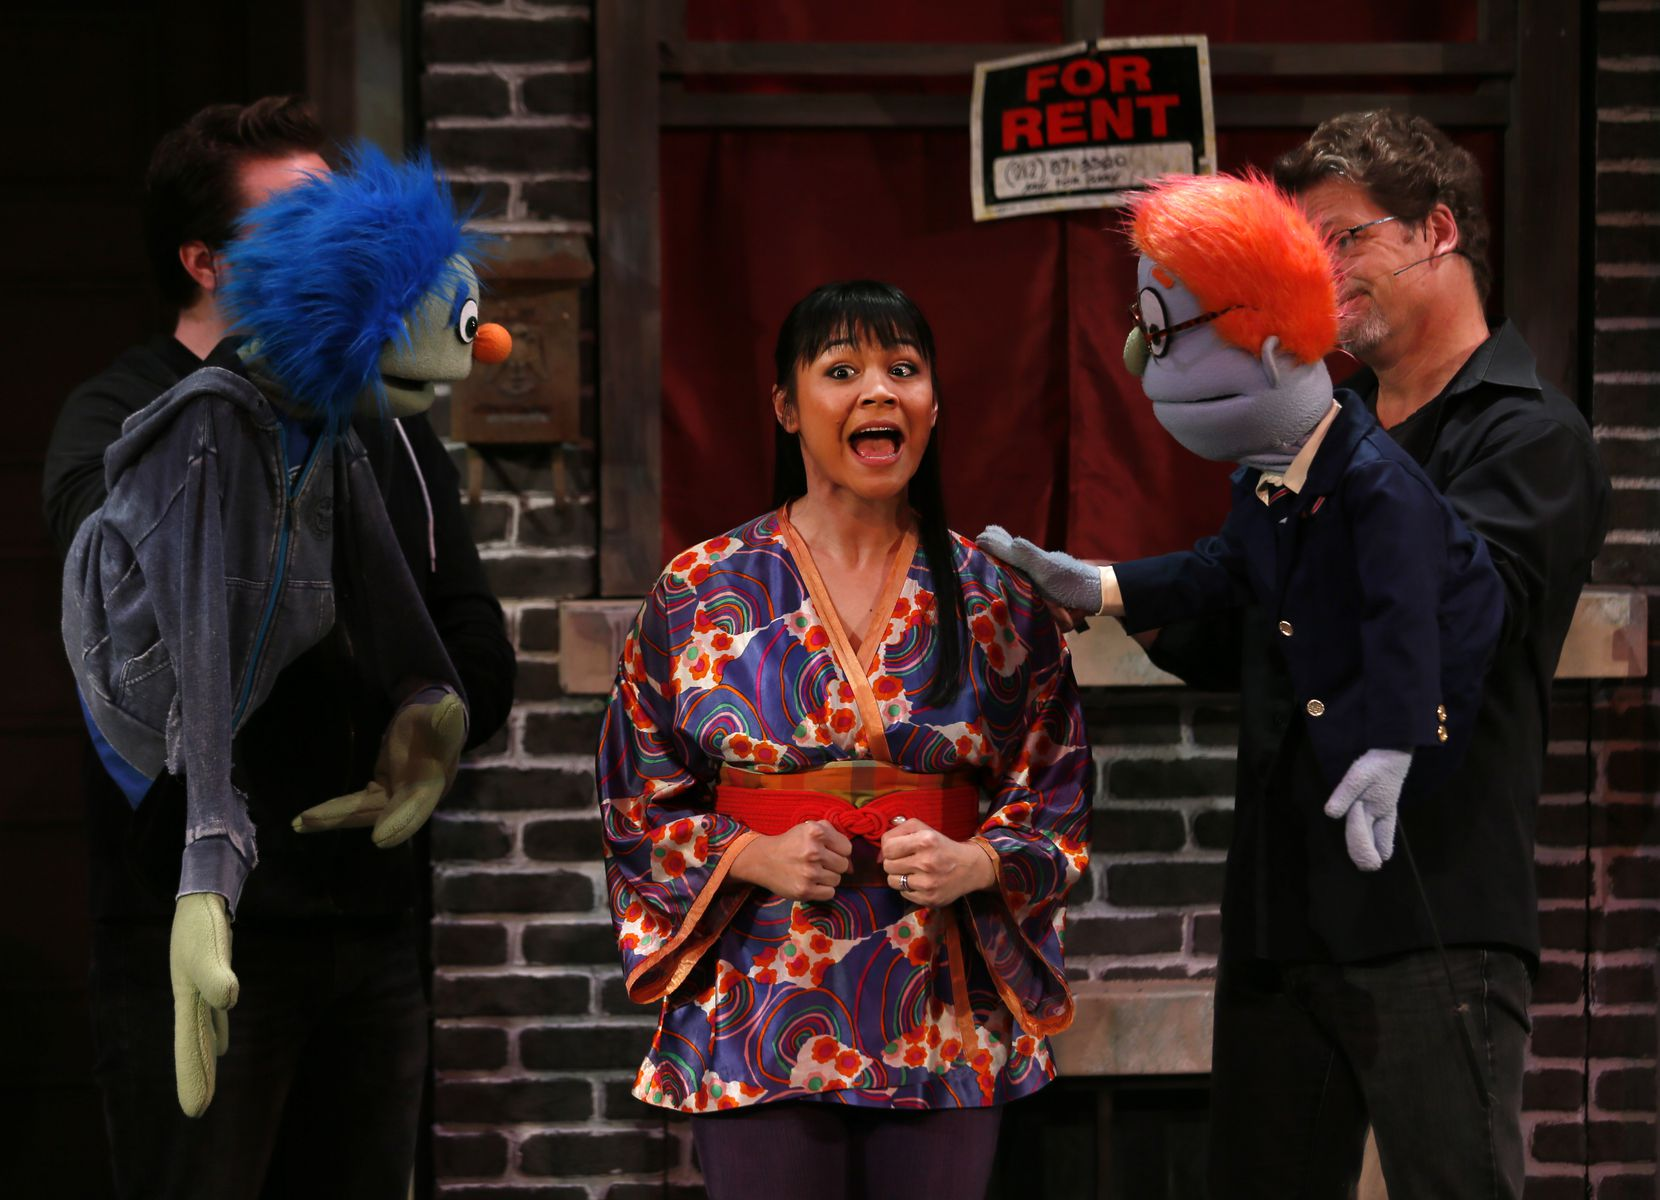 Avenue Q Christmas Eve.The Sweetness Becomes Clearer As Shock Of Avenue Q Fades